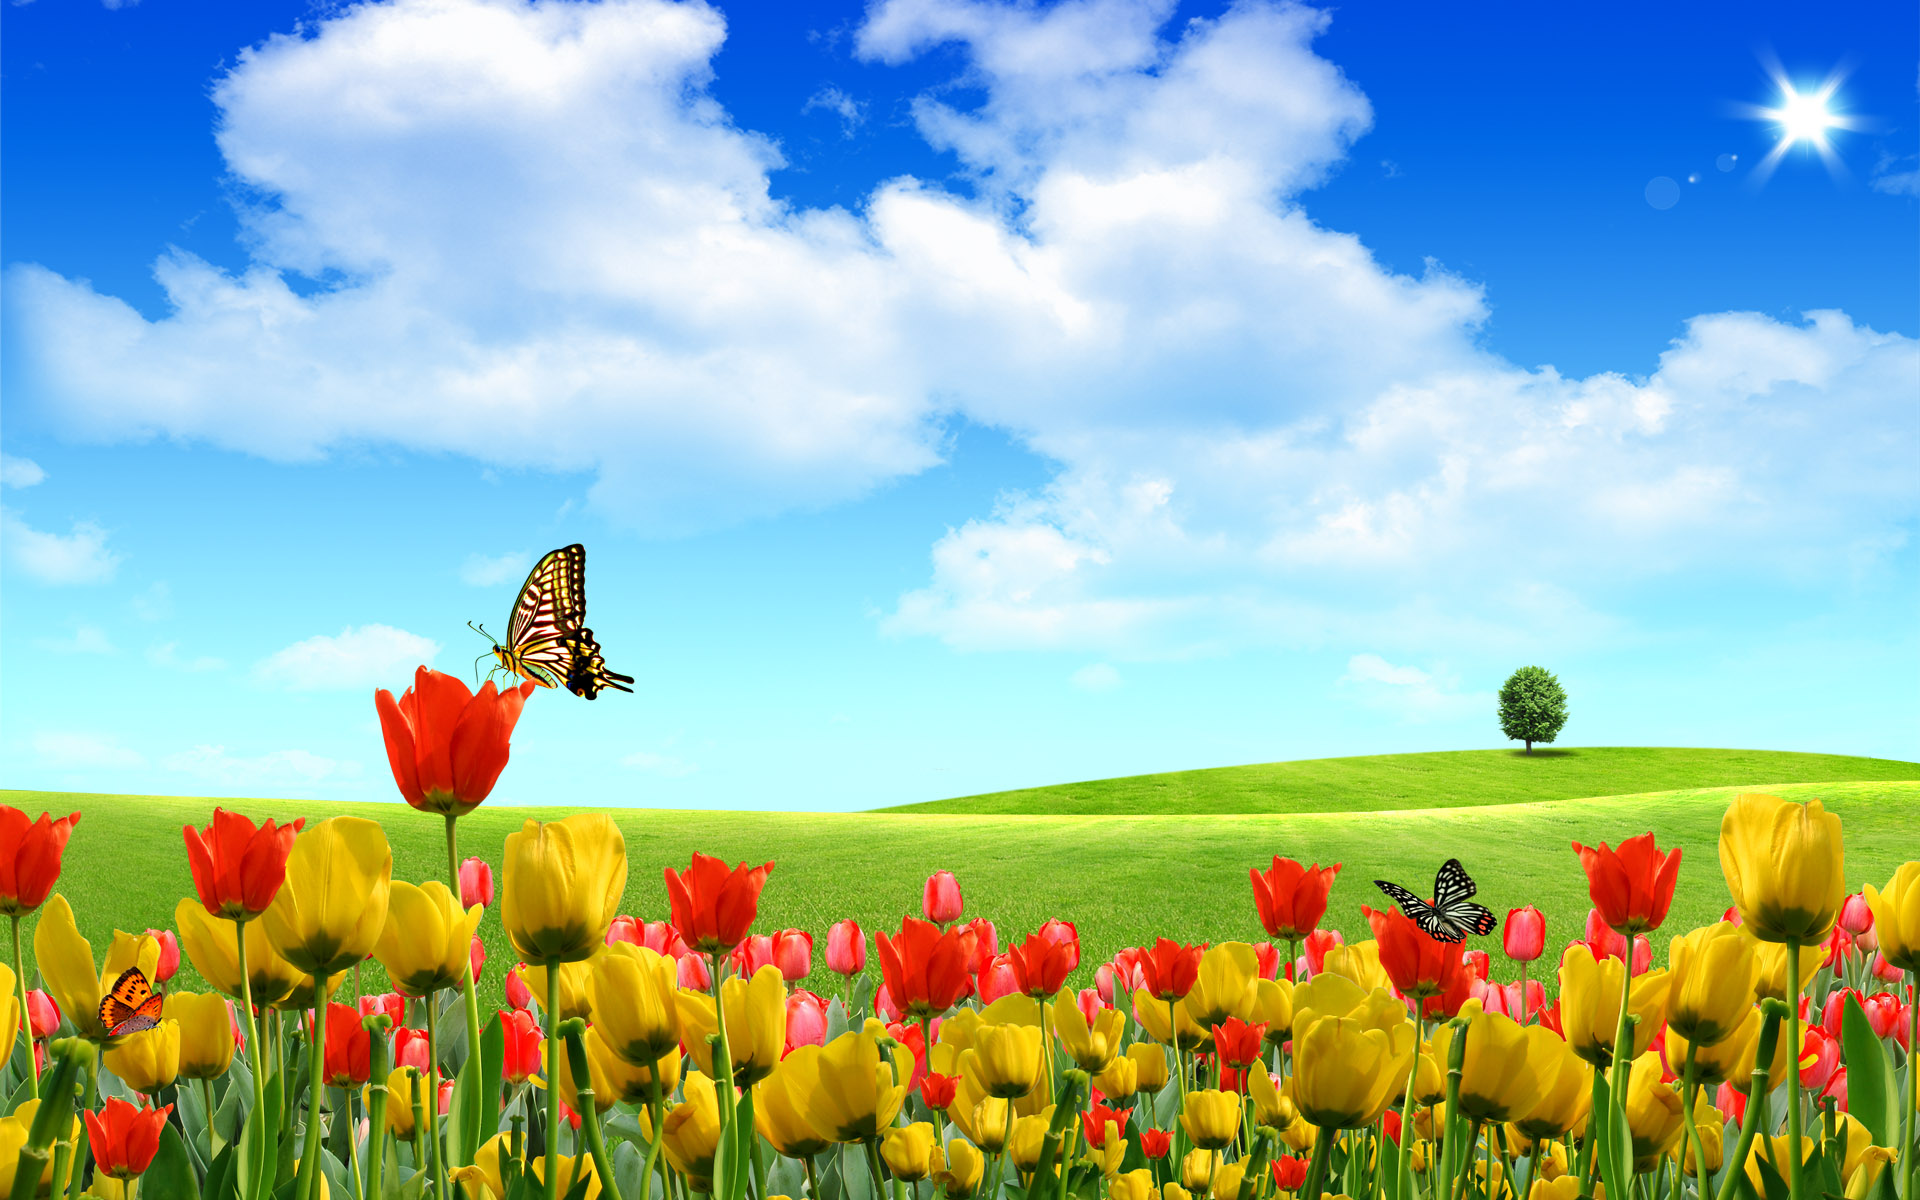 Scenery Wallpaper Includes Beautiful Buds Boasting of Its 1920x1200